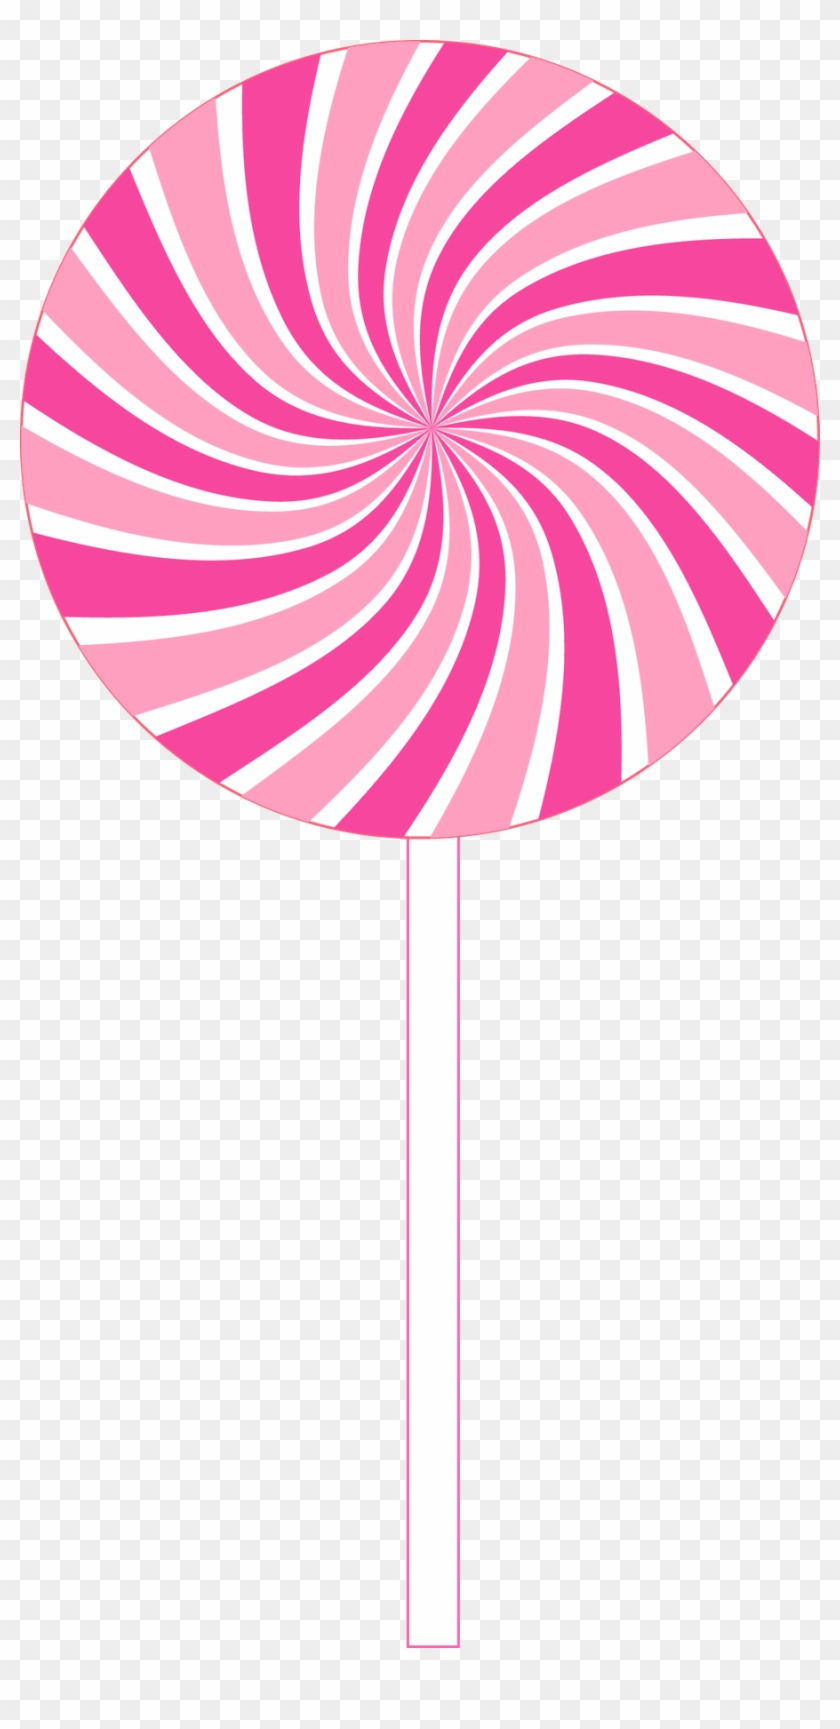 Png Free Stock Circus Cotton Candy Clipart.